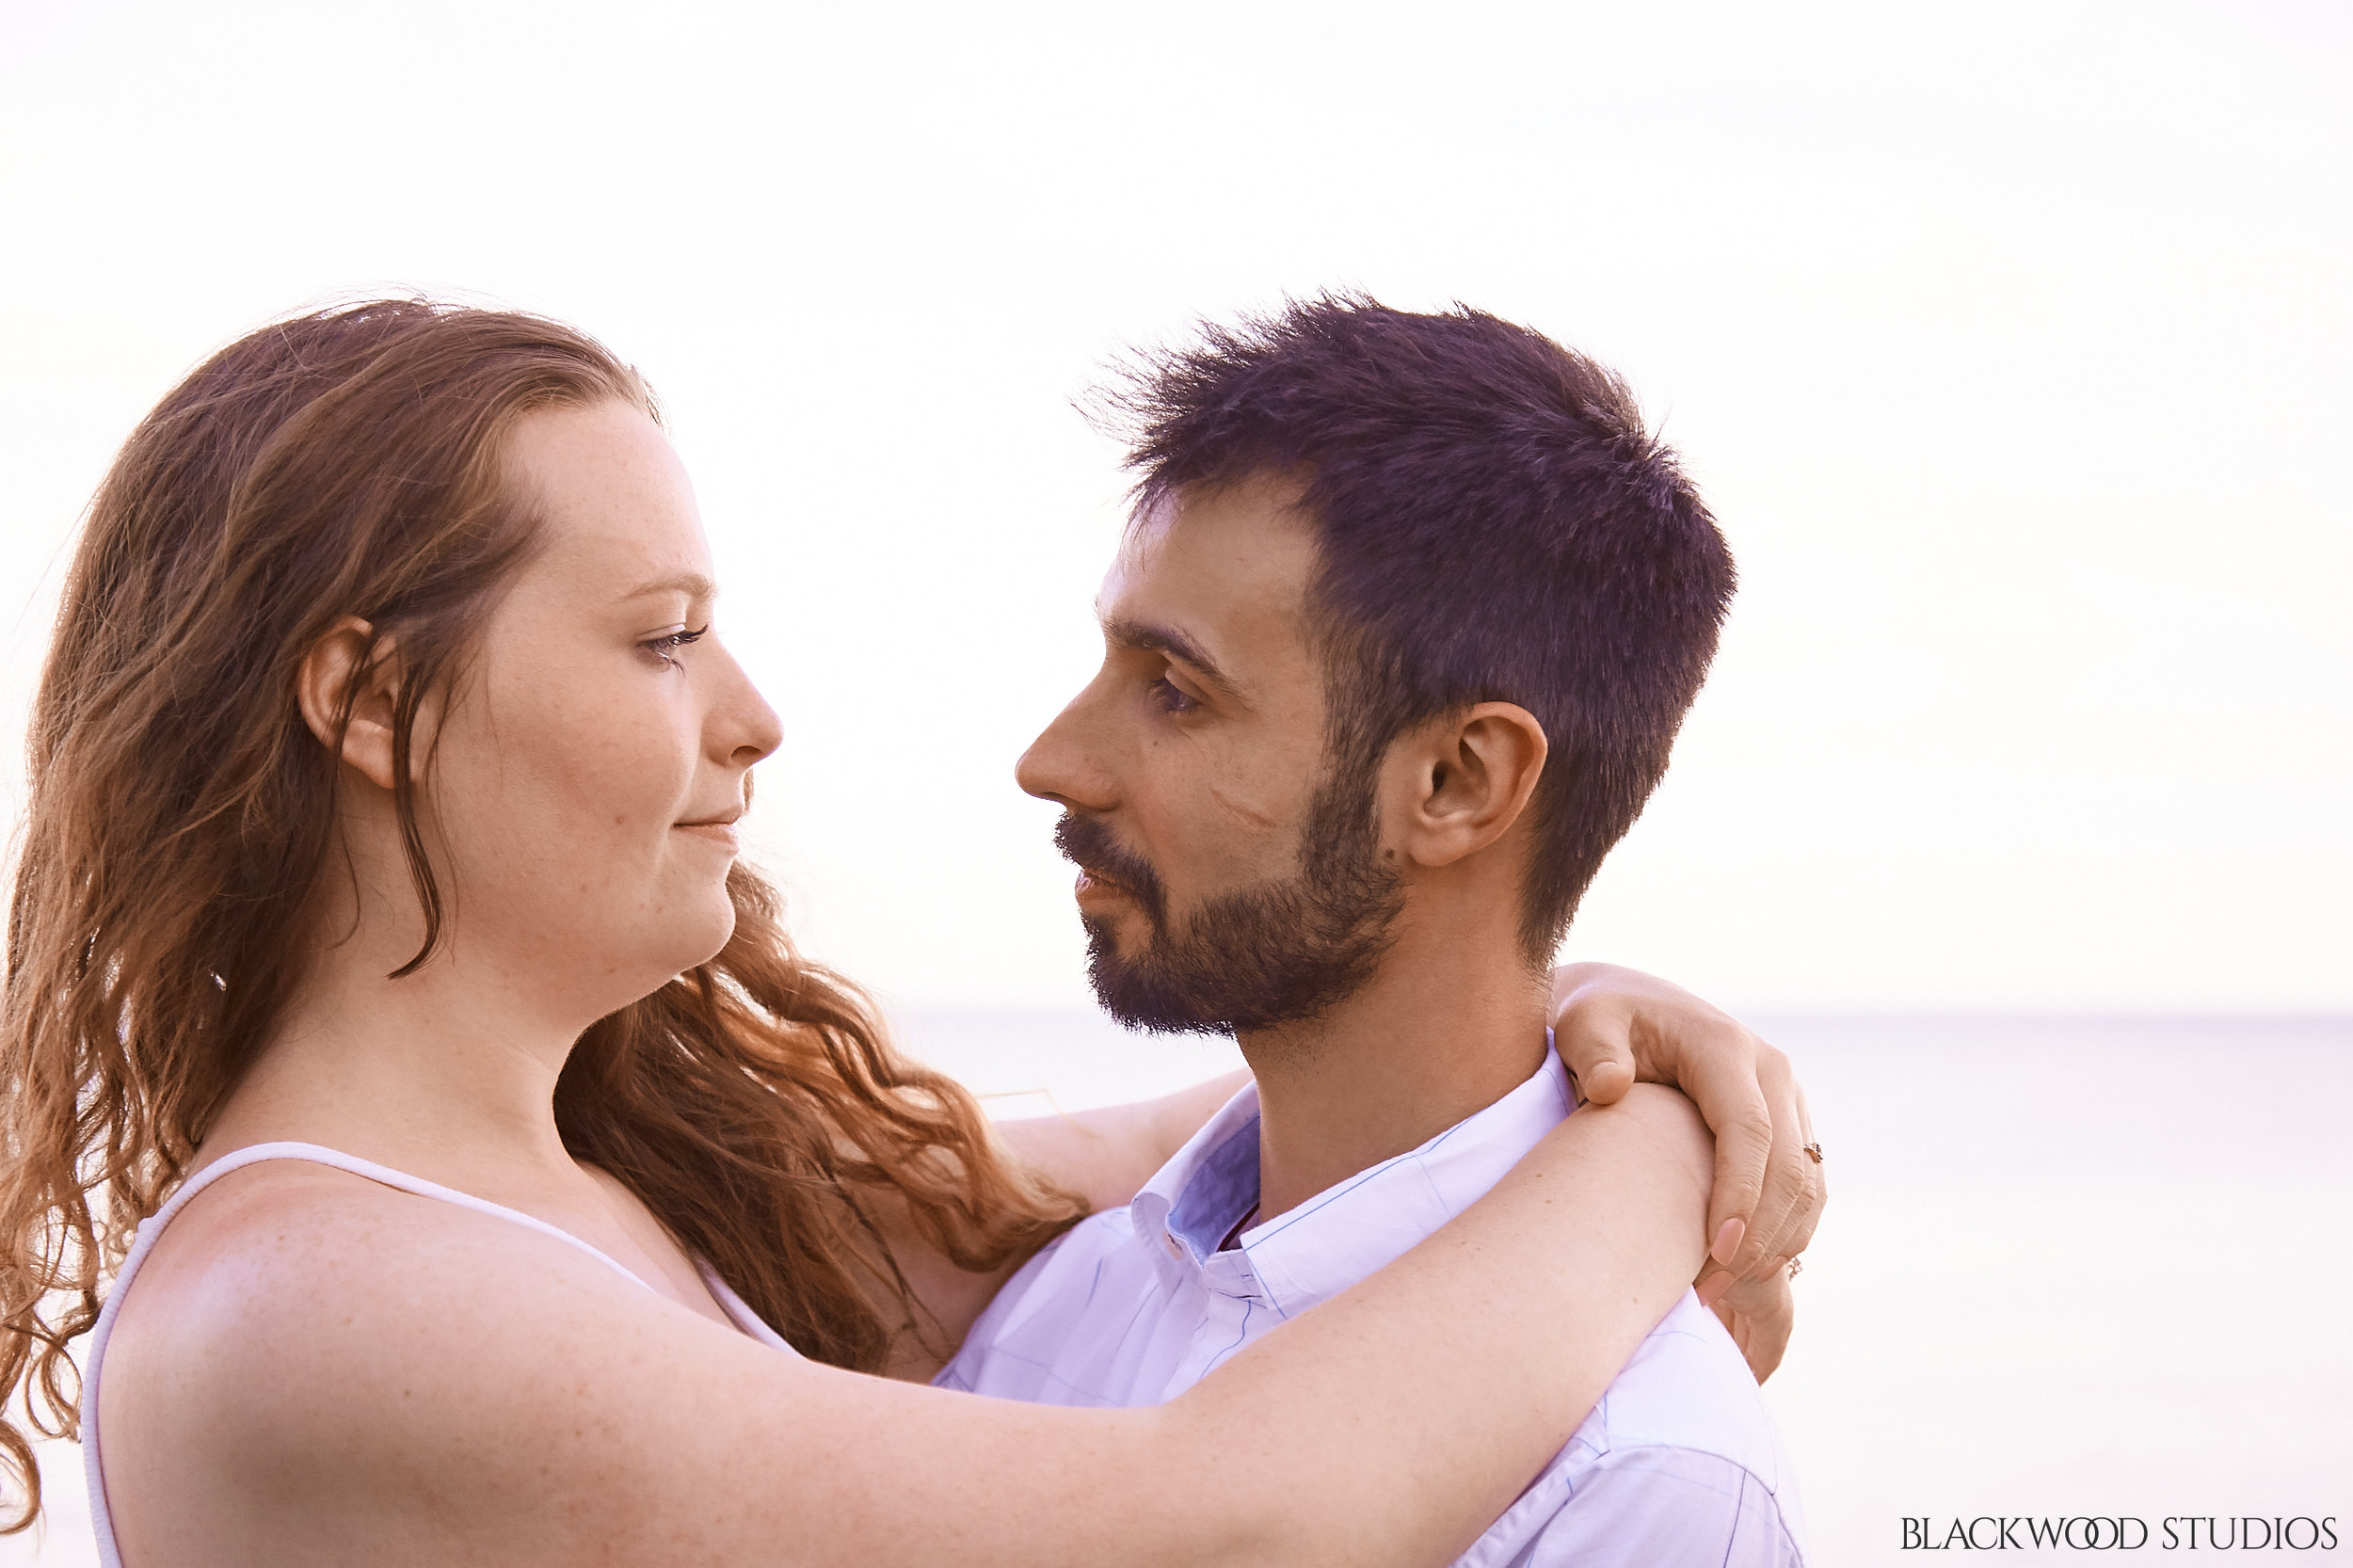 Blackwood-Studios-Photography-20190608195429-Brianna-Bryan-Engagement-Scarbourgh-Bluffs-Park-Ontario-Canada.jpg